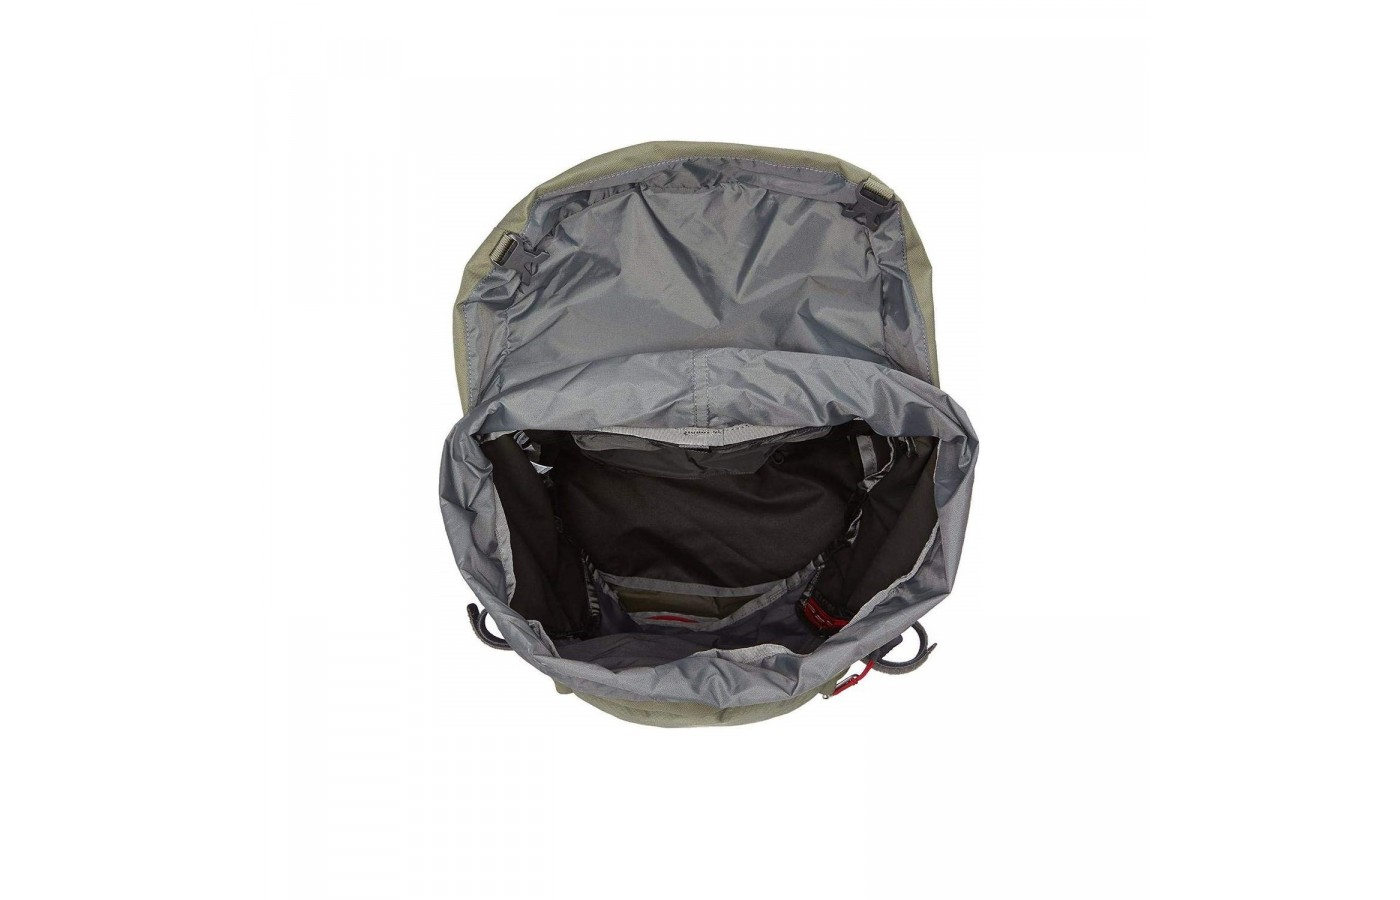 The North Face Terra 65 offers an improved zippered sleeping bag compartment making it ideal for overnight trips.